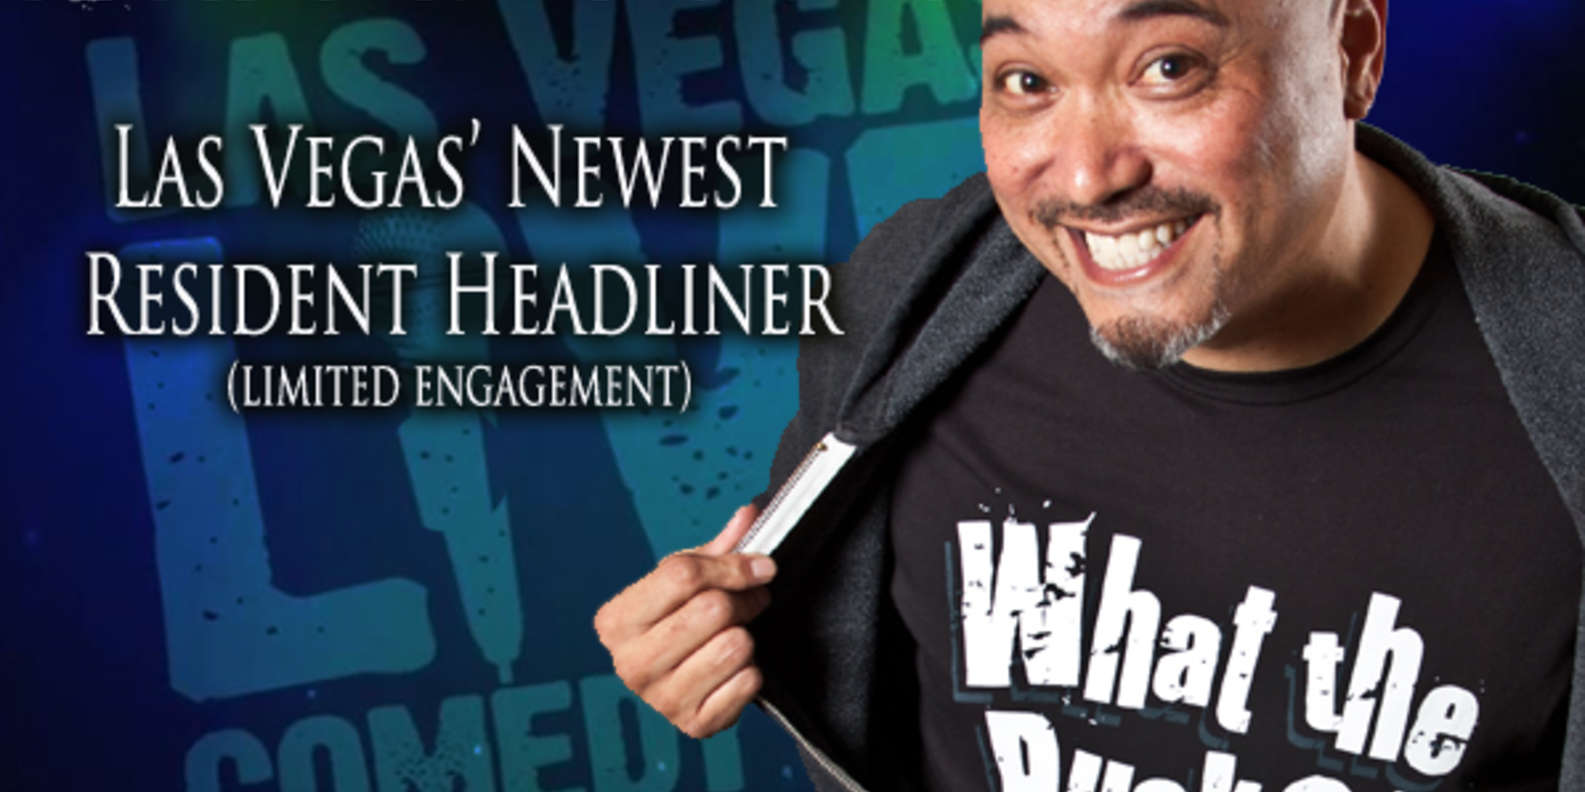 Get Some Laughs at a Live Comedy Event